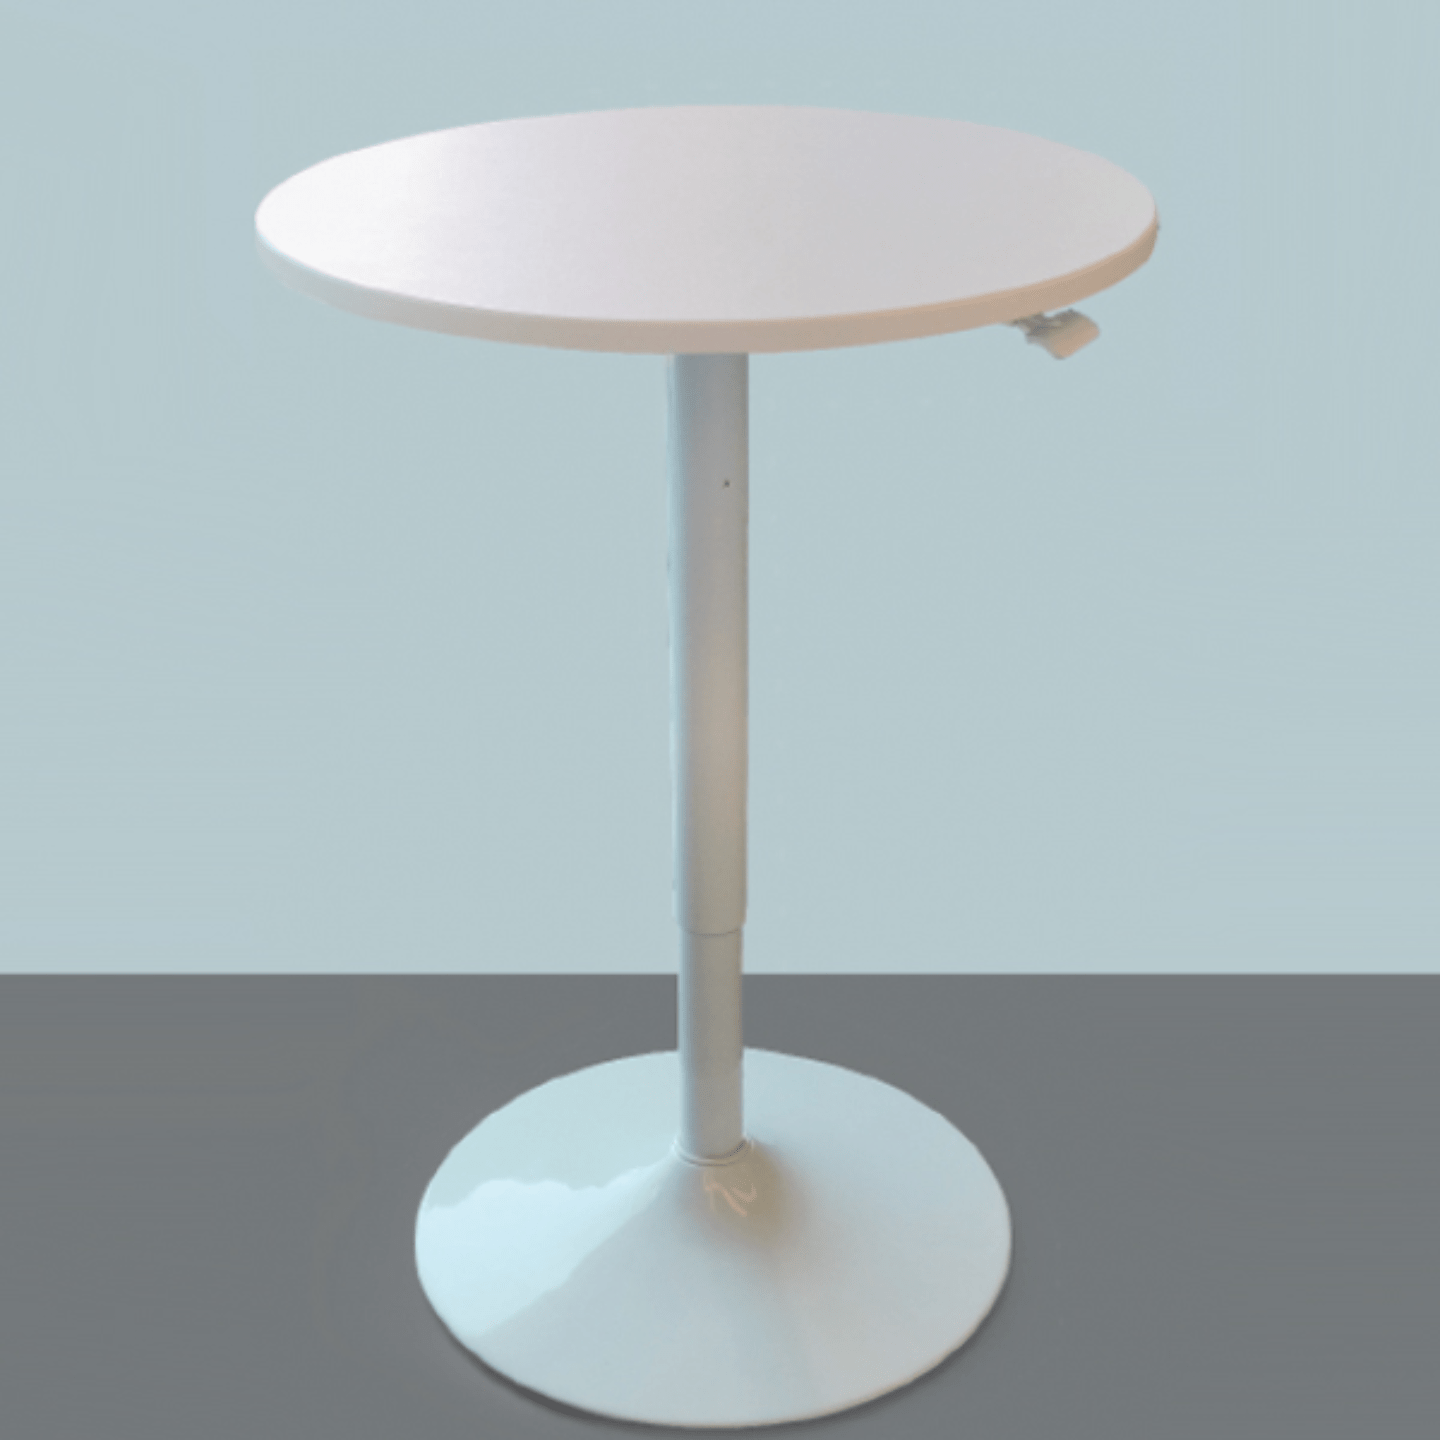 HEIGHT ADJUSTABLE TABLE HT-6